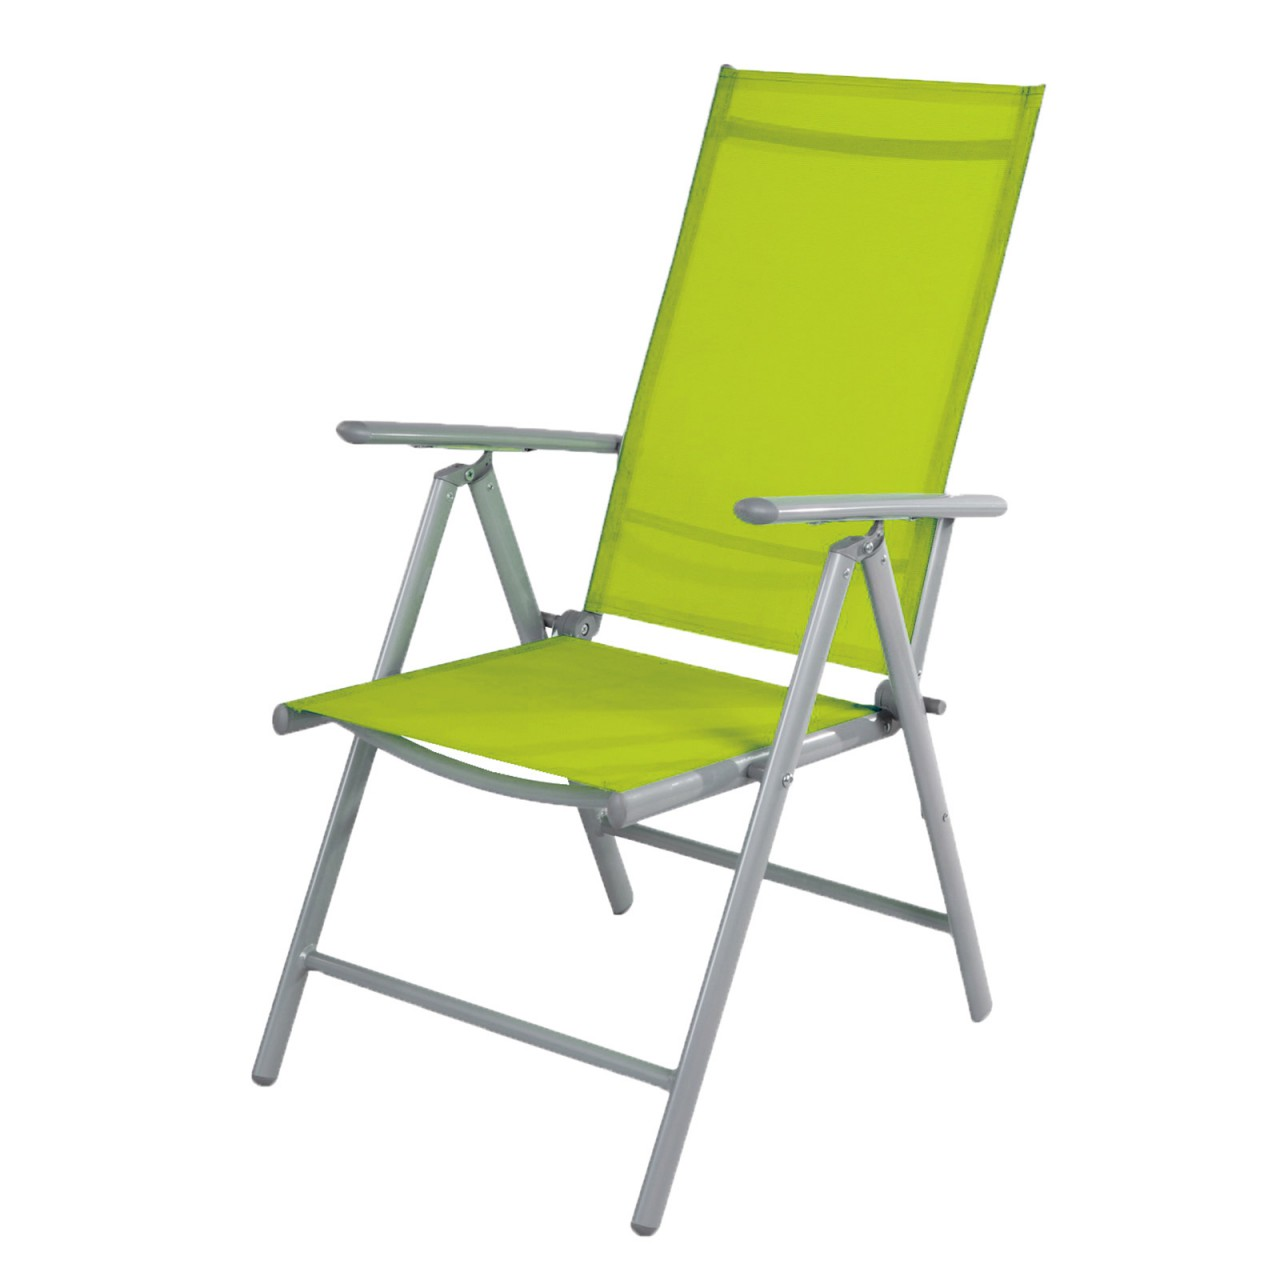 Remarkable Lex Folding Chair 7 Positions Yellow Green Gmtry Best Dining Table And Chair Ideas Images Gmtryco